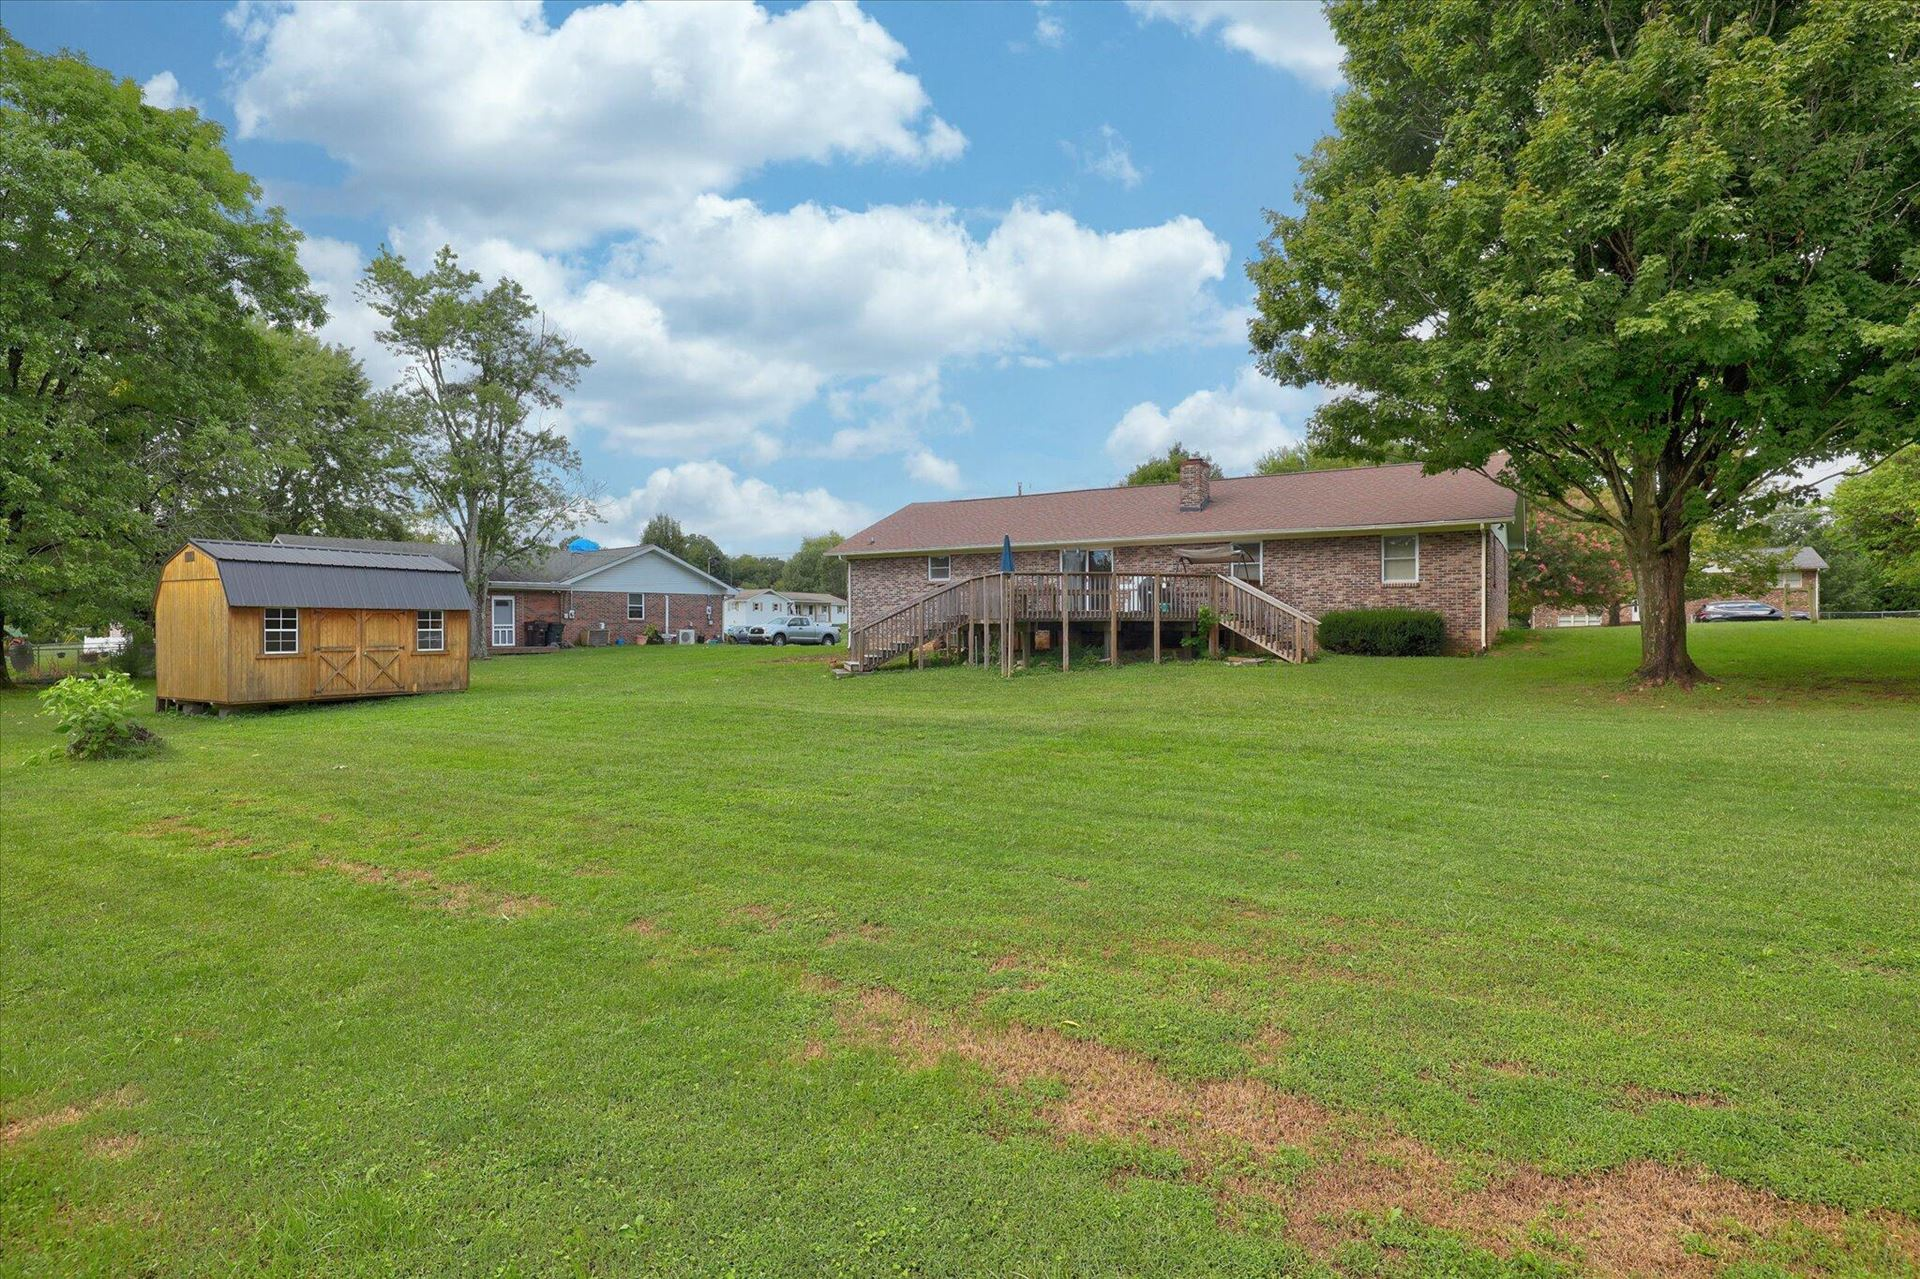 Photo of 8616 Tervada Drive, Knoxville, TN 37931 (MLS # 1167654)